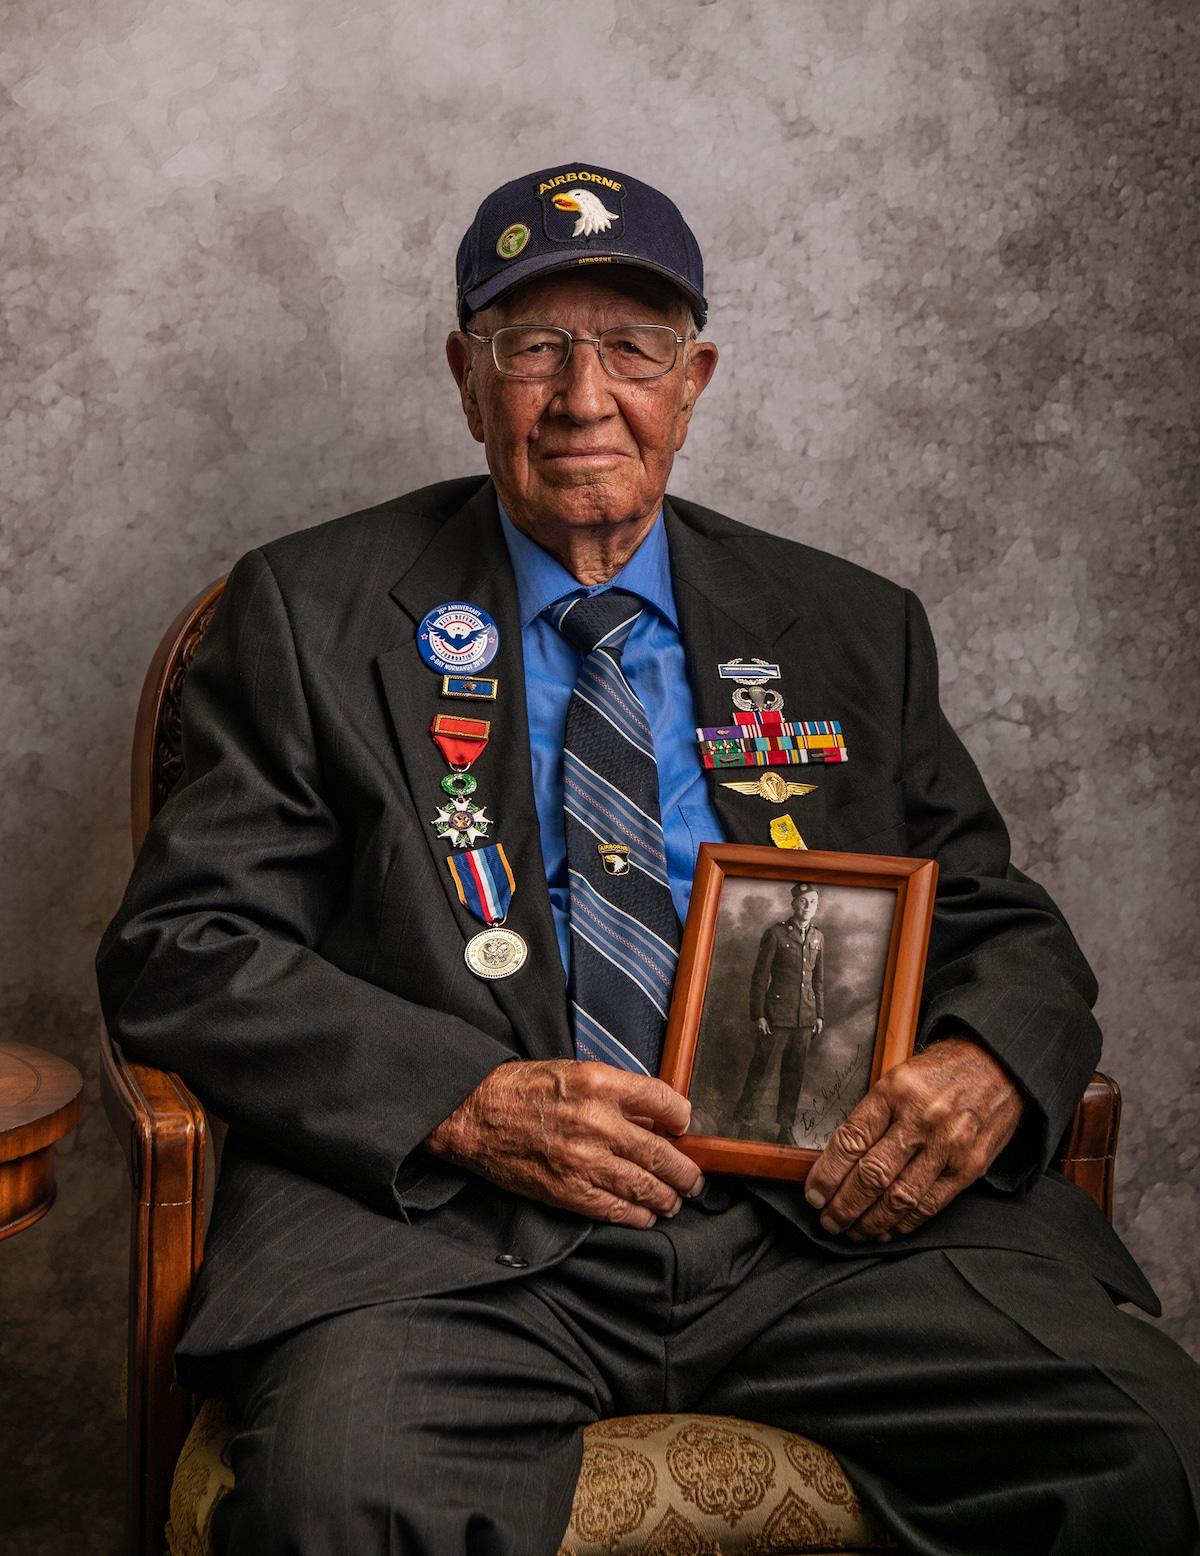 Portraits of World War II Veterans by Jeffrey Rease